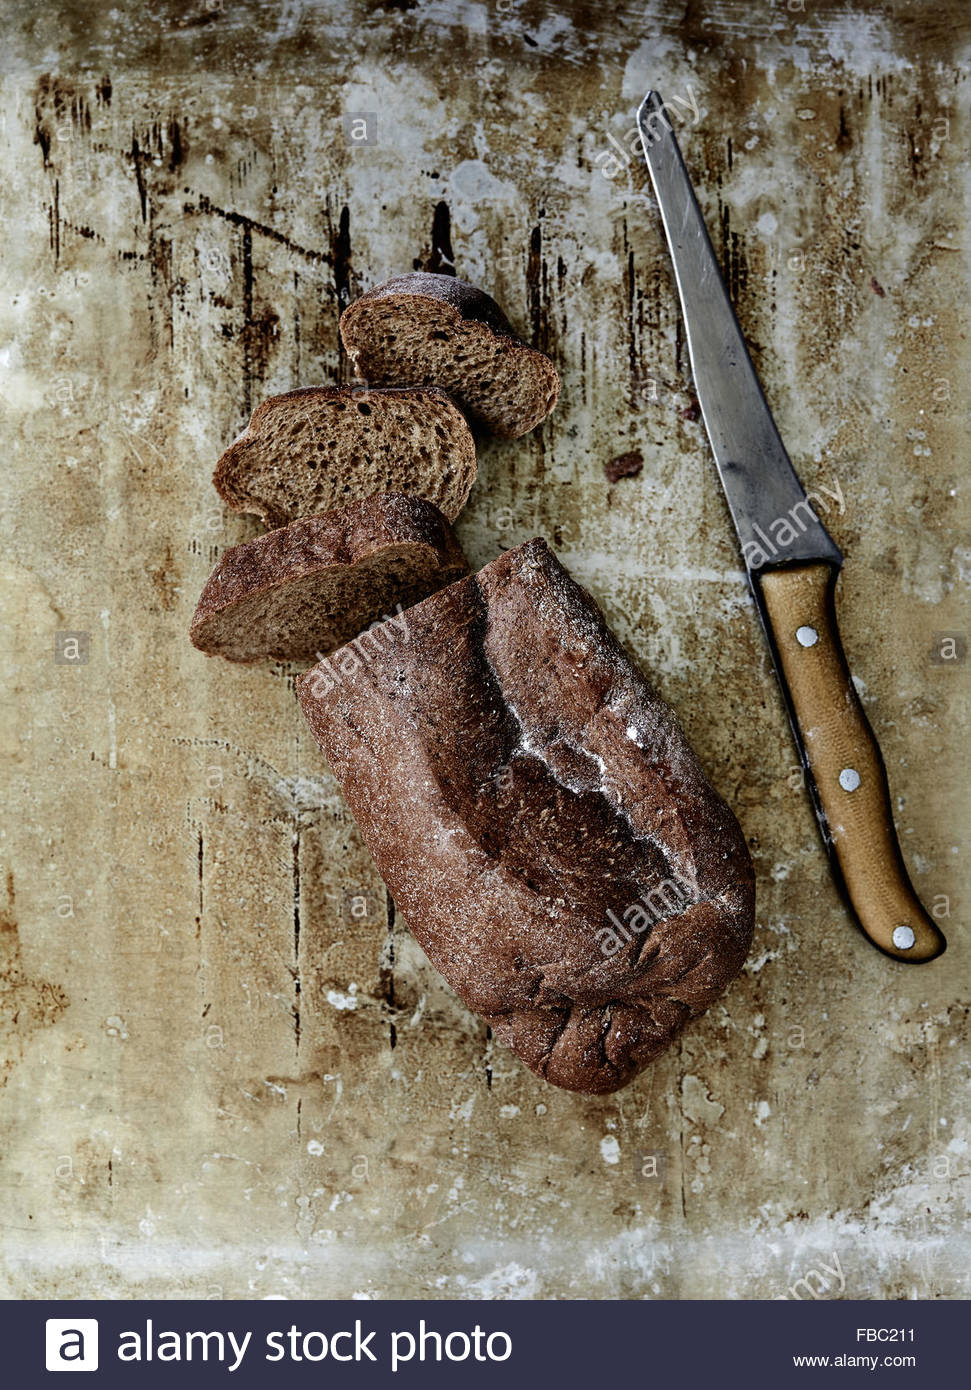 Sliced rye bread and rustic knife on old metal sheet - Stock Image